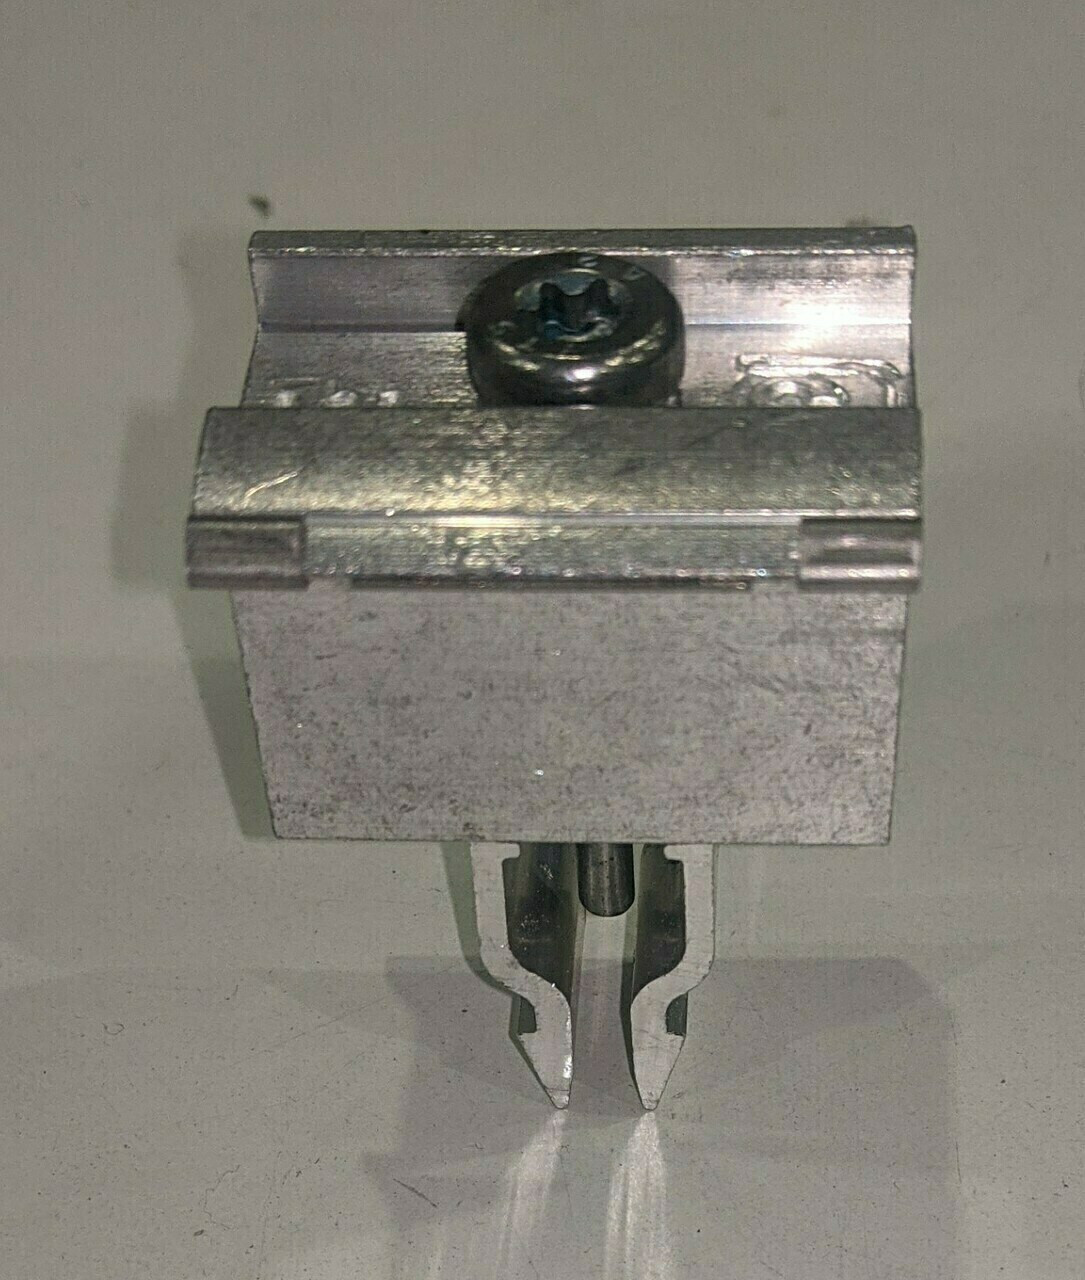 HB - End-Clamp 35mm, grounding